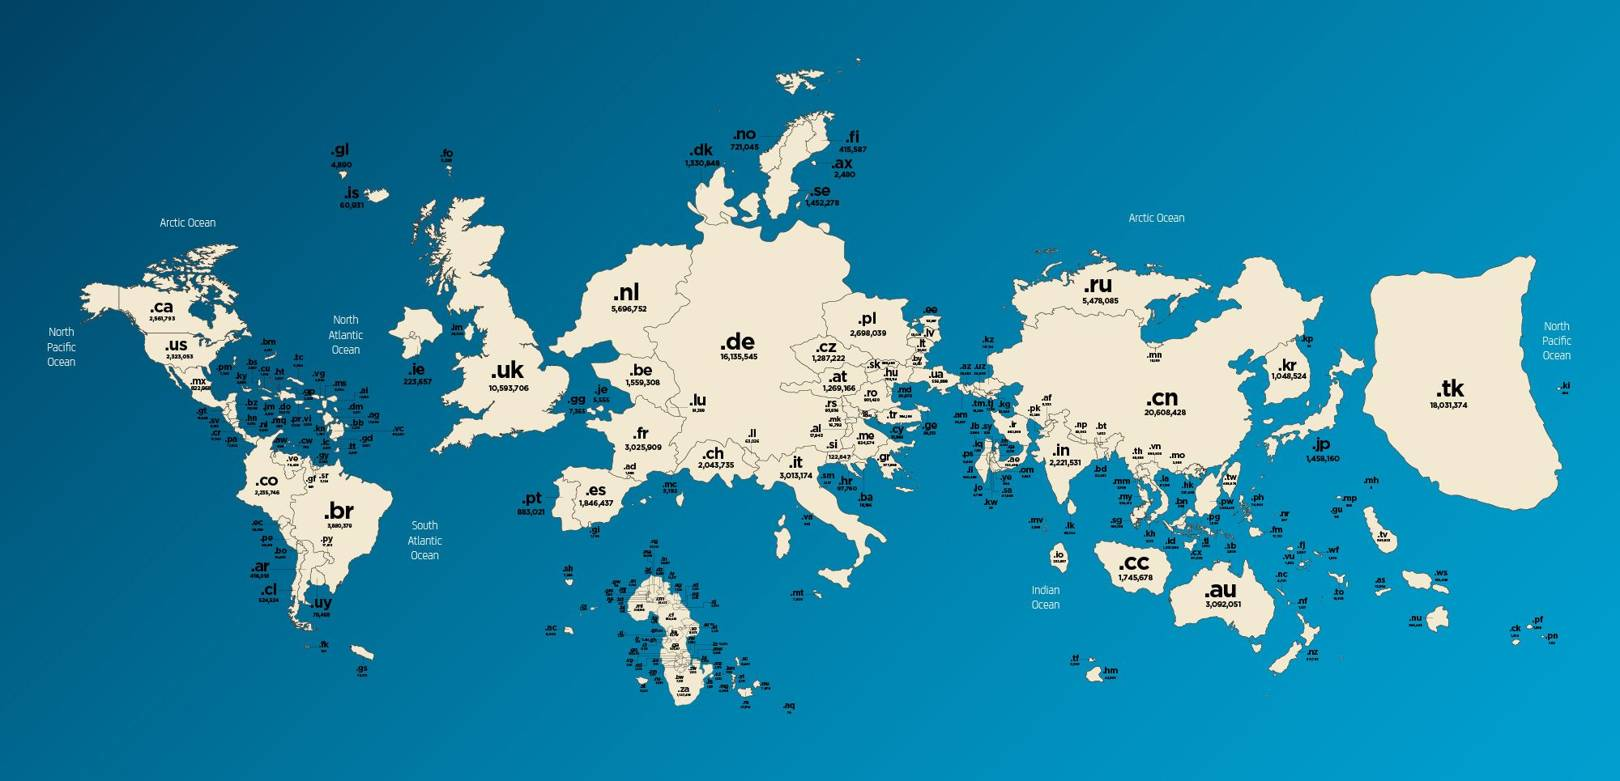 Map Of World With Names.Map Of Domain Names Flips The World On Its Head Wired Uk